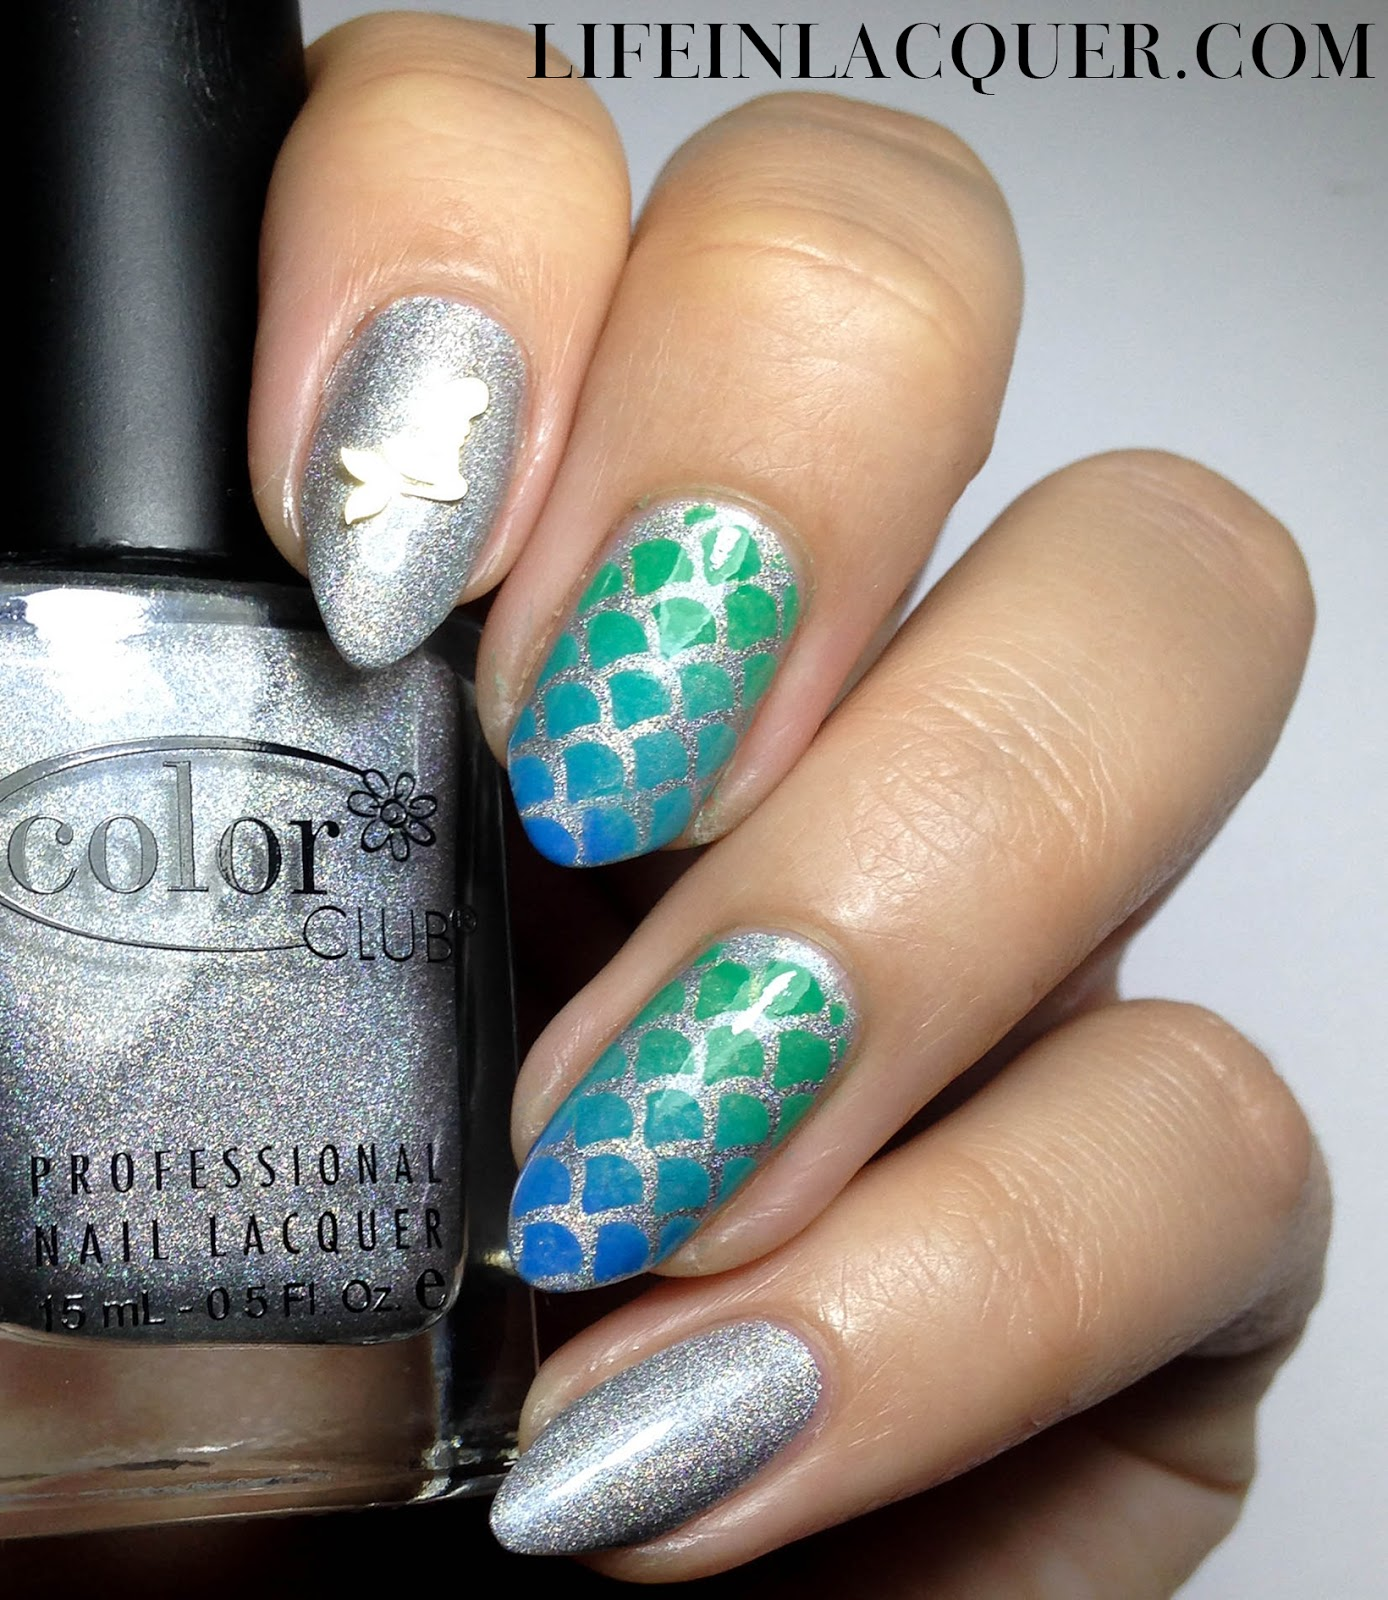 Life in lacquer fish scales nail art and tutorial fish scale nail art prinsesfo Choice Image